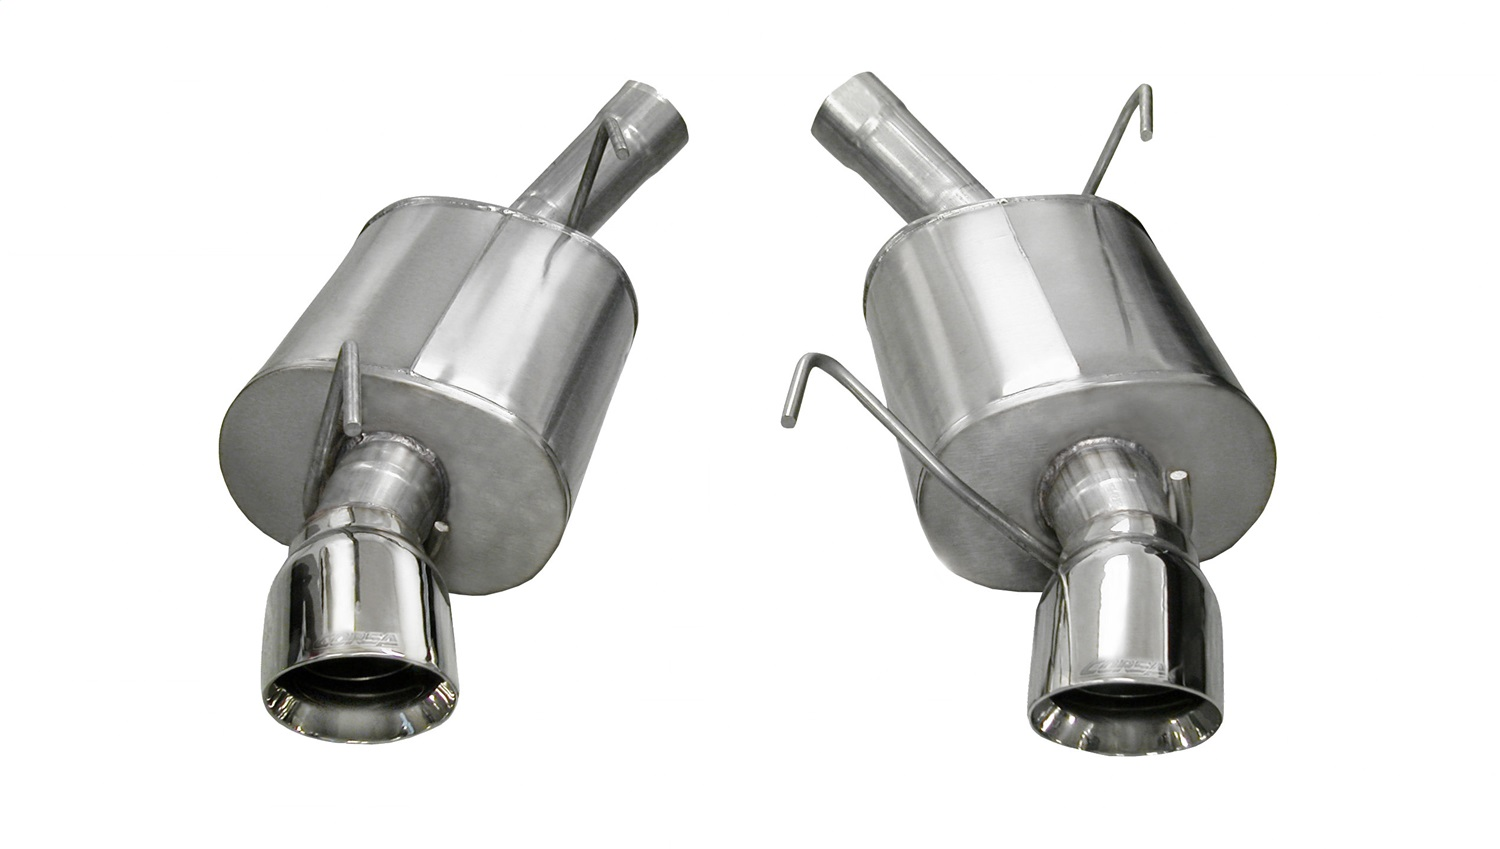 Corsa Performance 14311 Sport Axle-Back Exhaust System Fits 05-10 Mustang